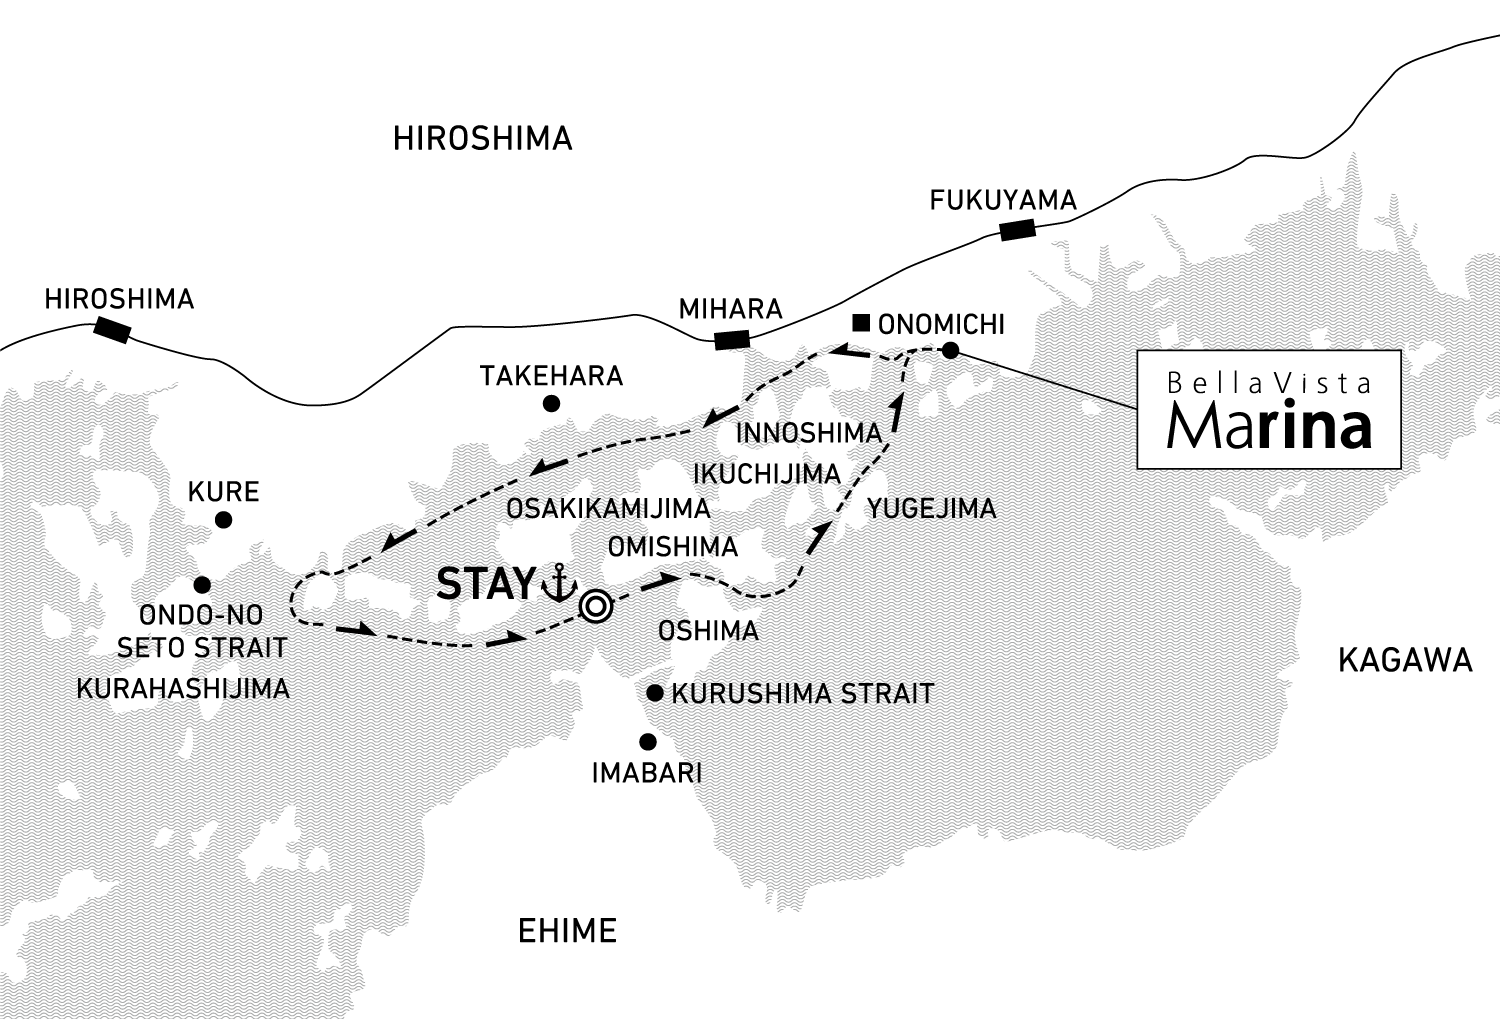 A two-day voyage to cruise the Seto Inland Sea 1 night / anchor offshore at Omishima